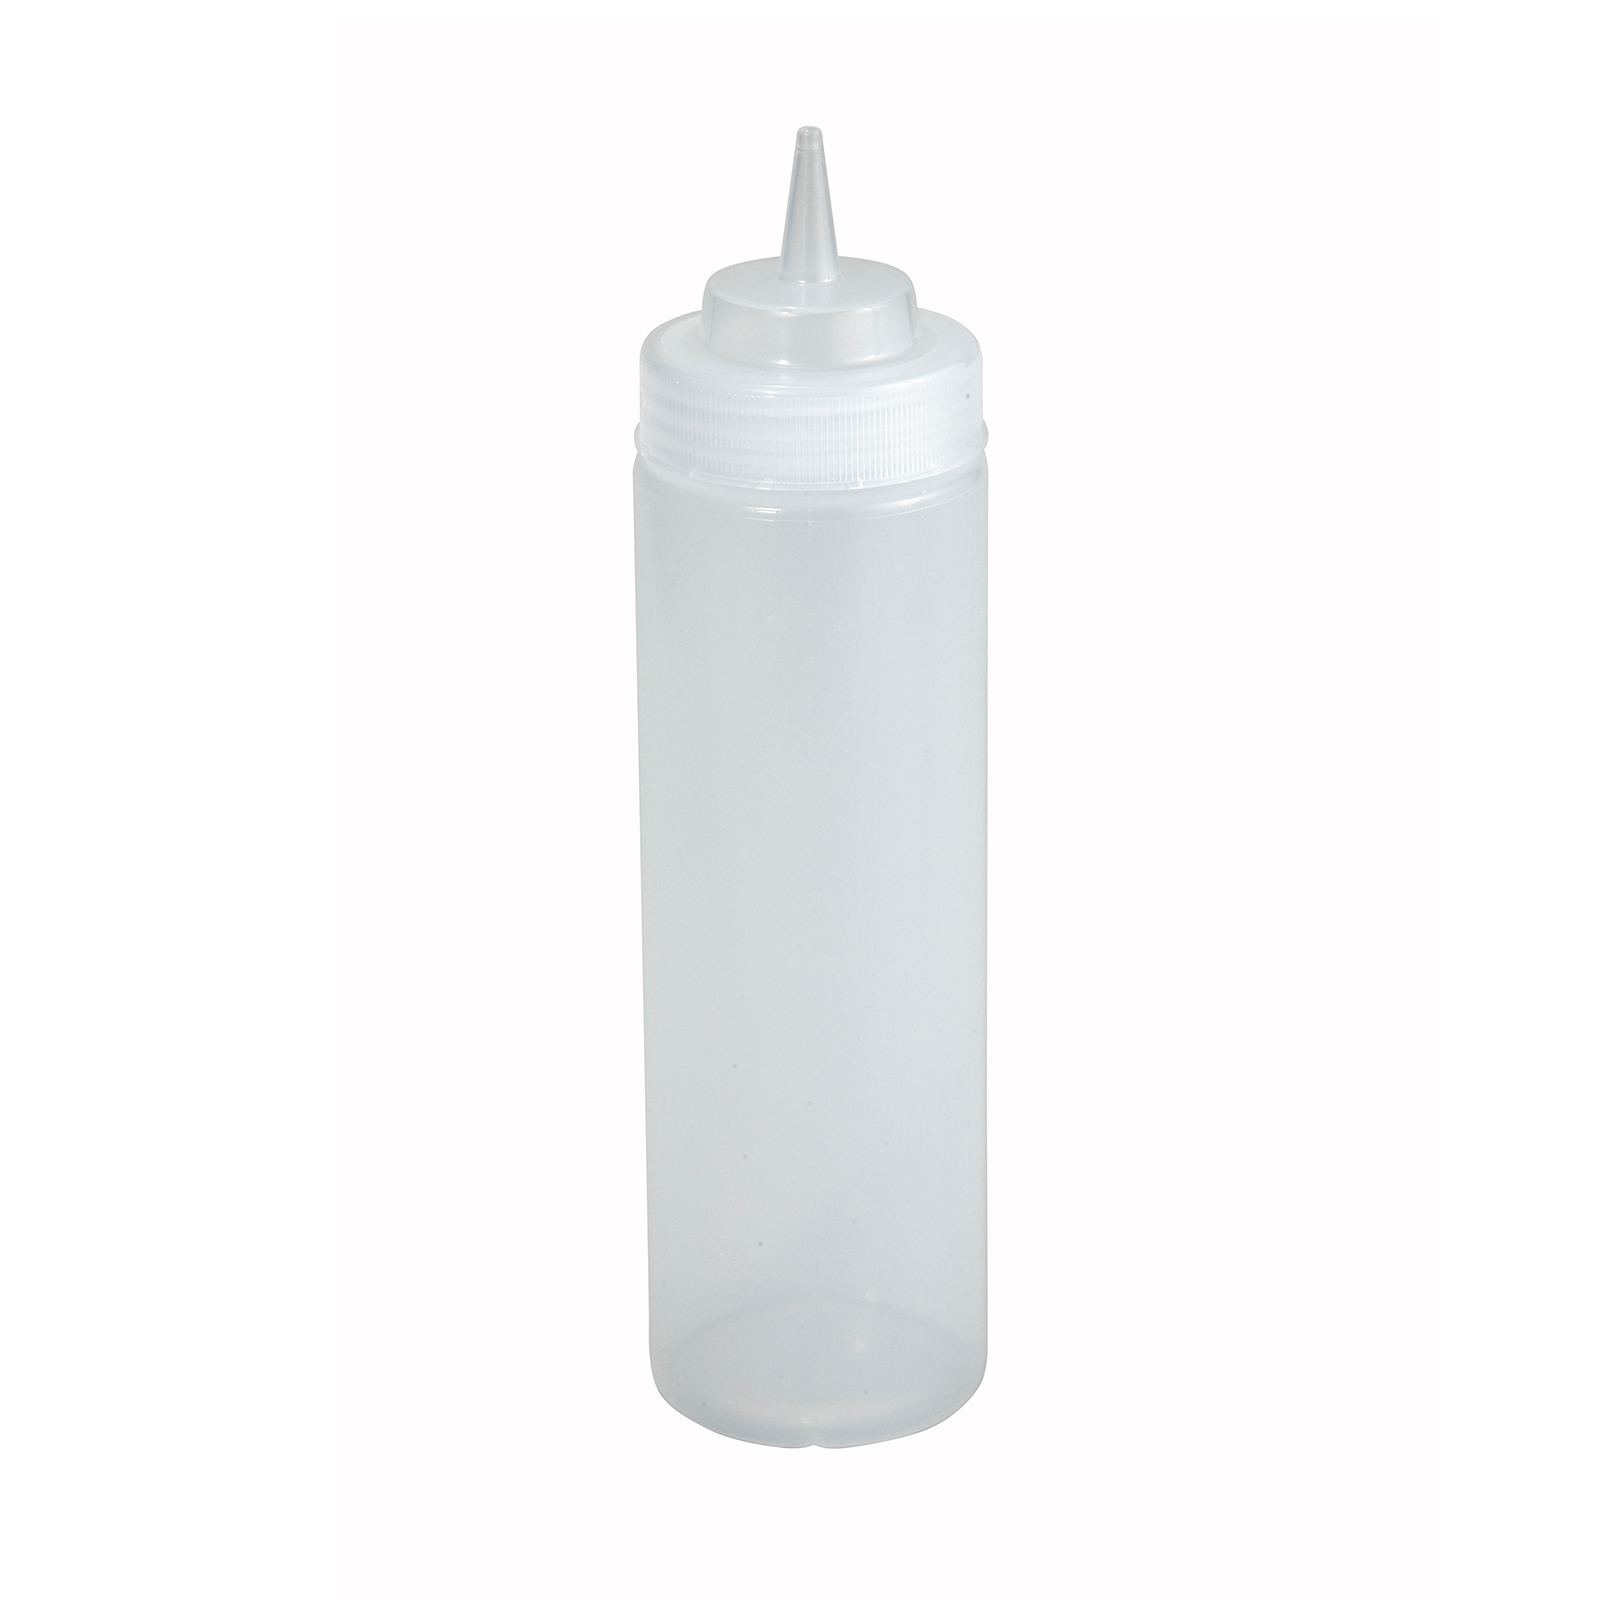 Winco PSW-24 squeeze bottle